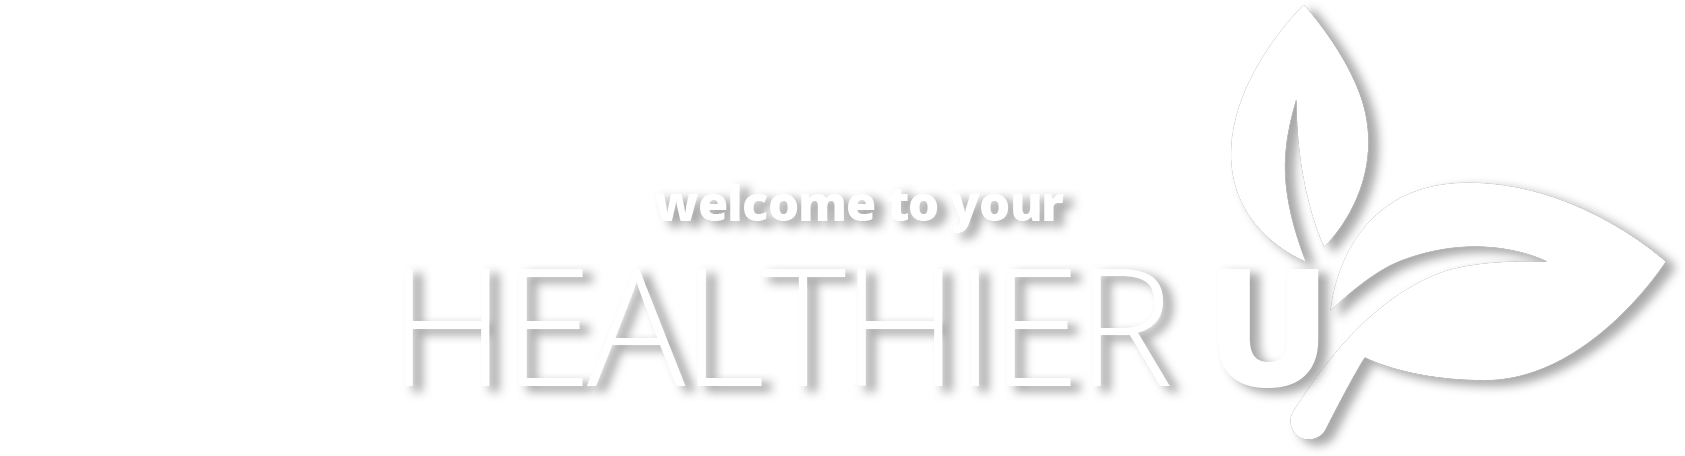 Welcome to your Healthier U